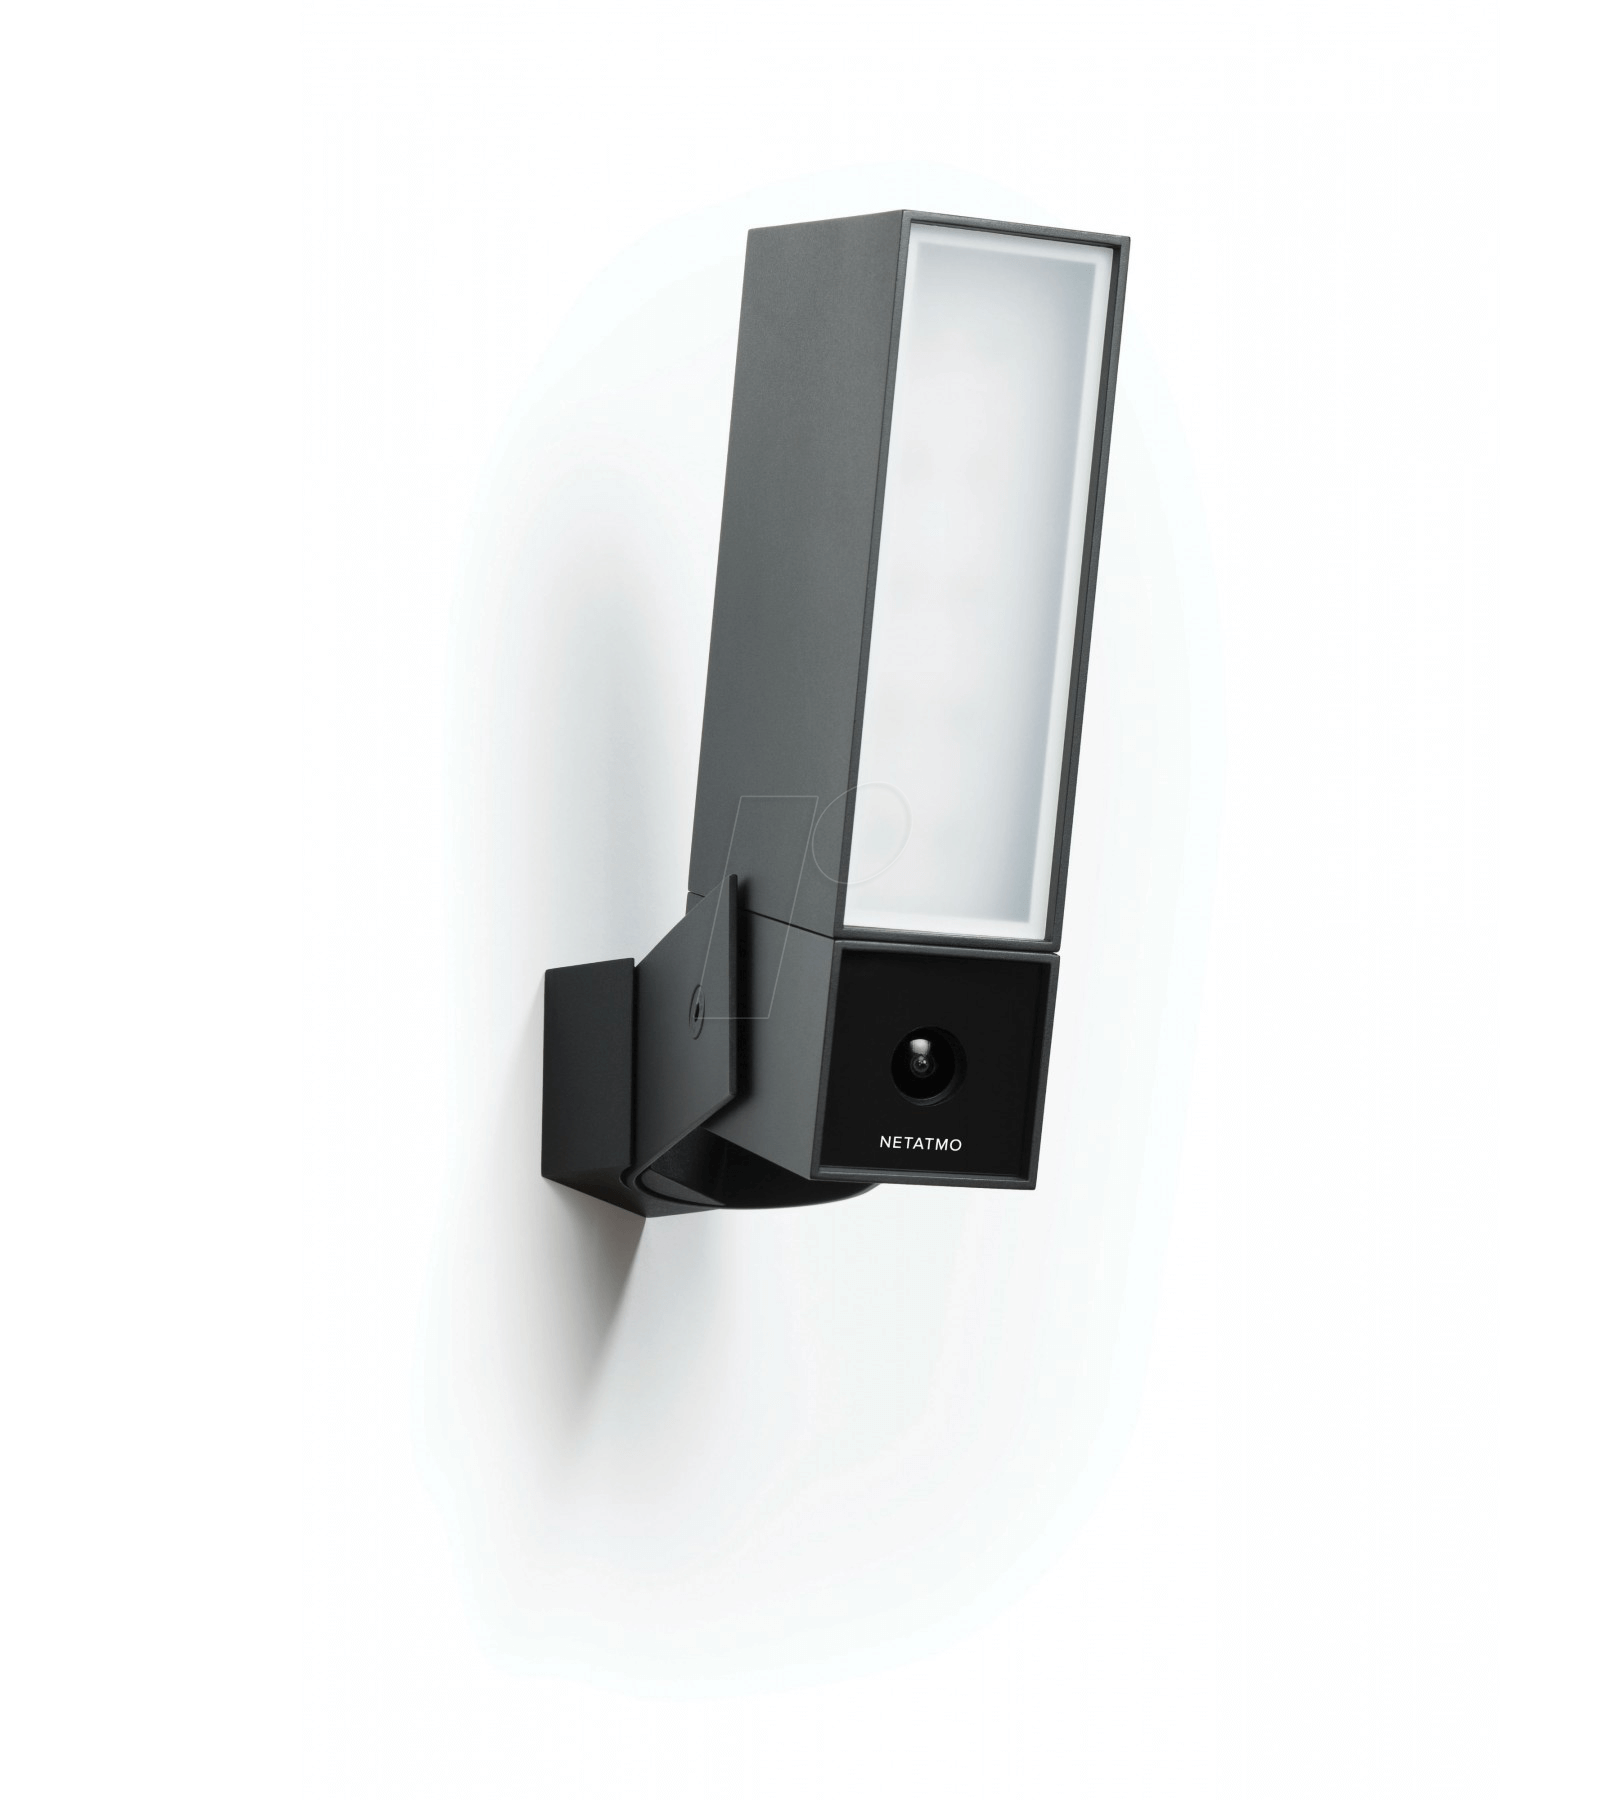 netatmo presence berwachungskamera presence ip wlan au en bei reichelt elektronik. Black Bedroom Furniture Sets. Home Design Ideas